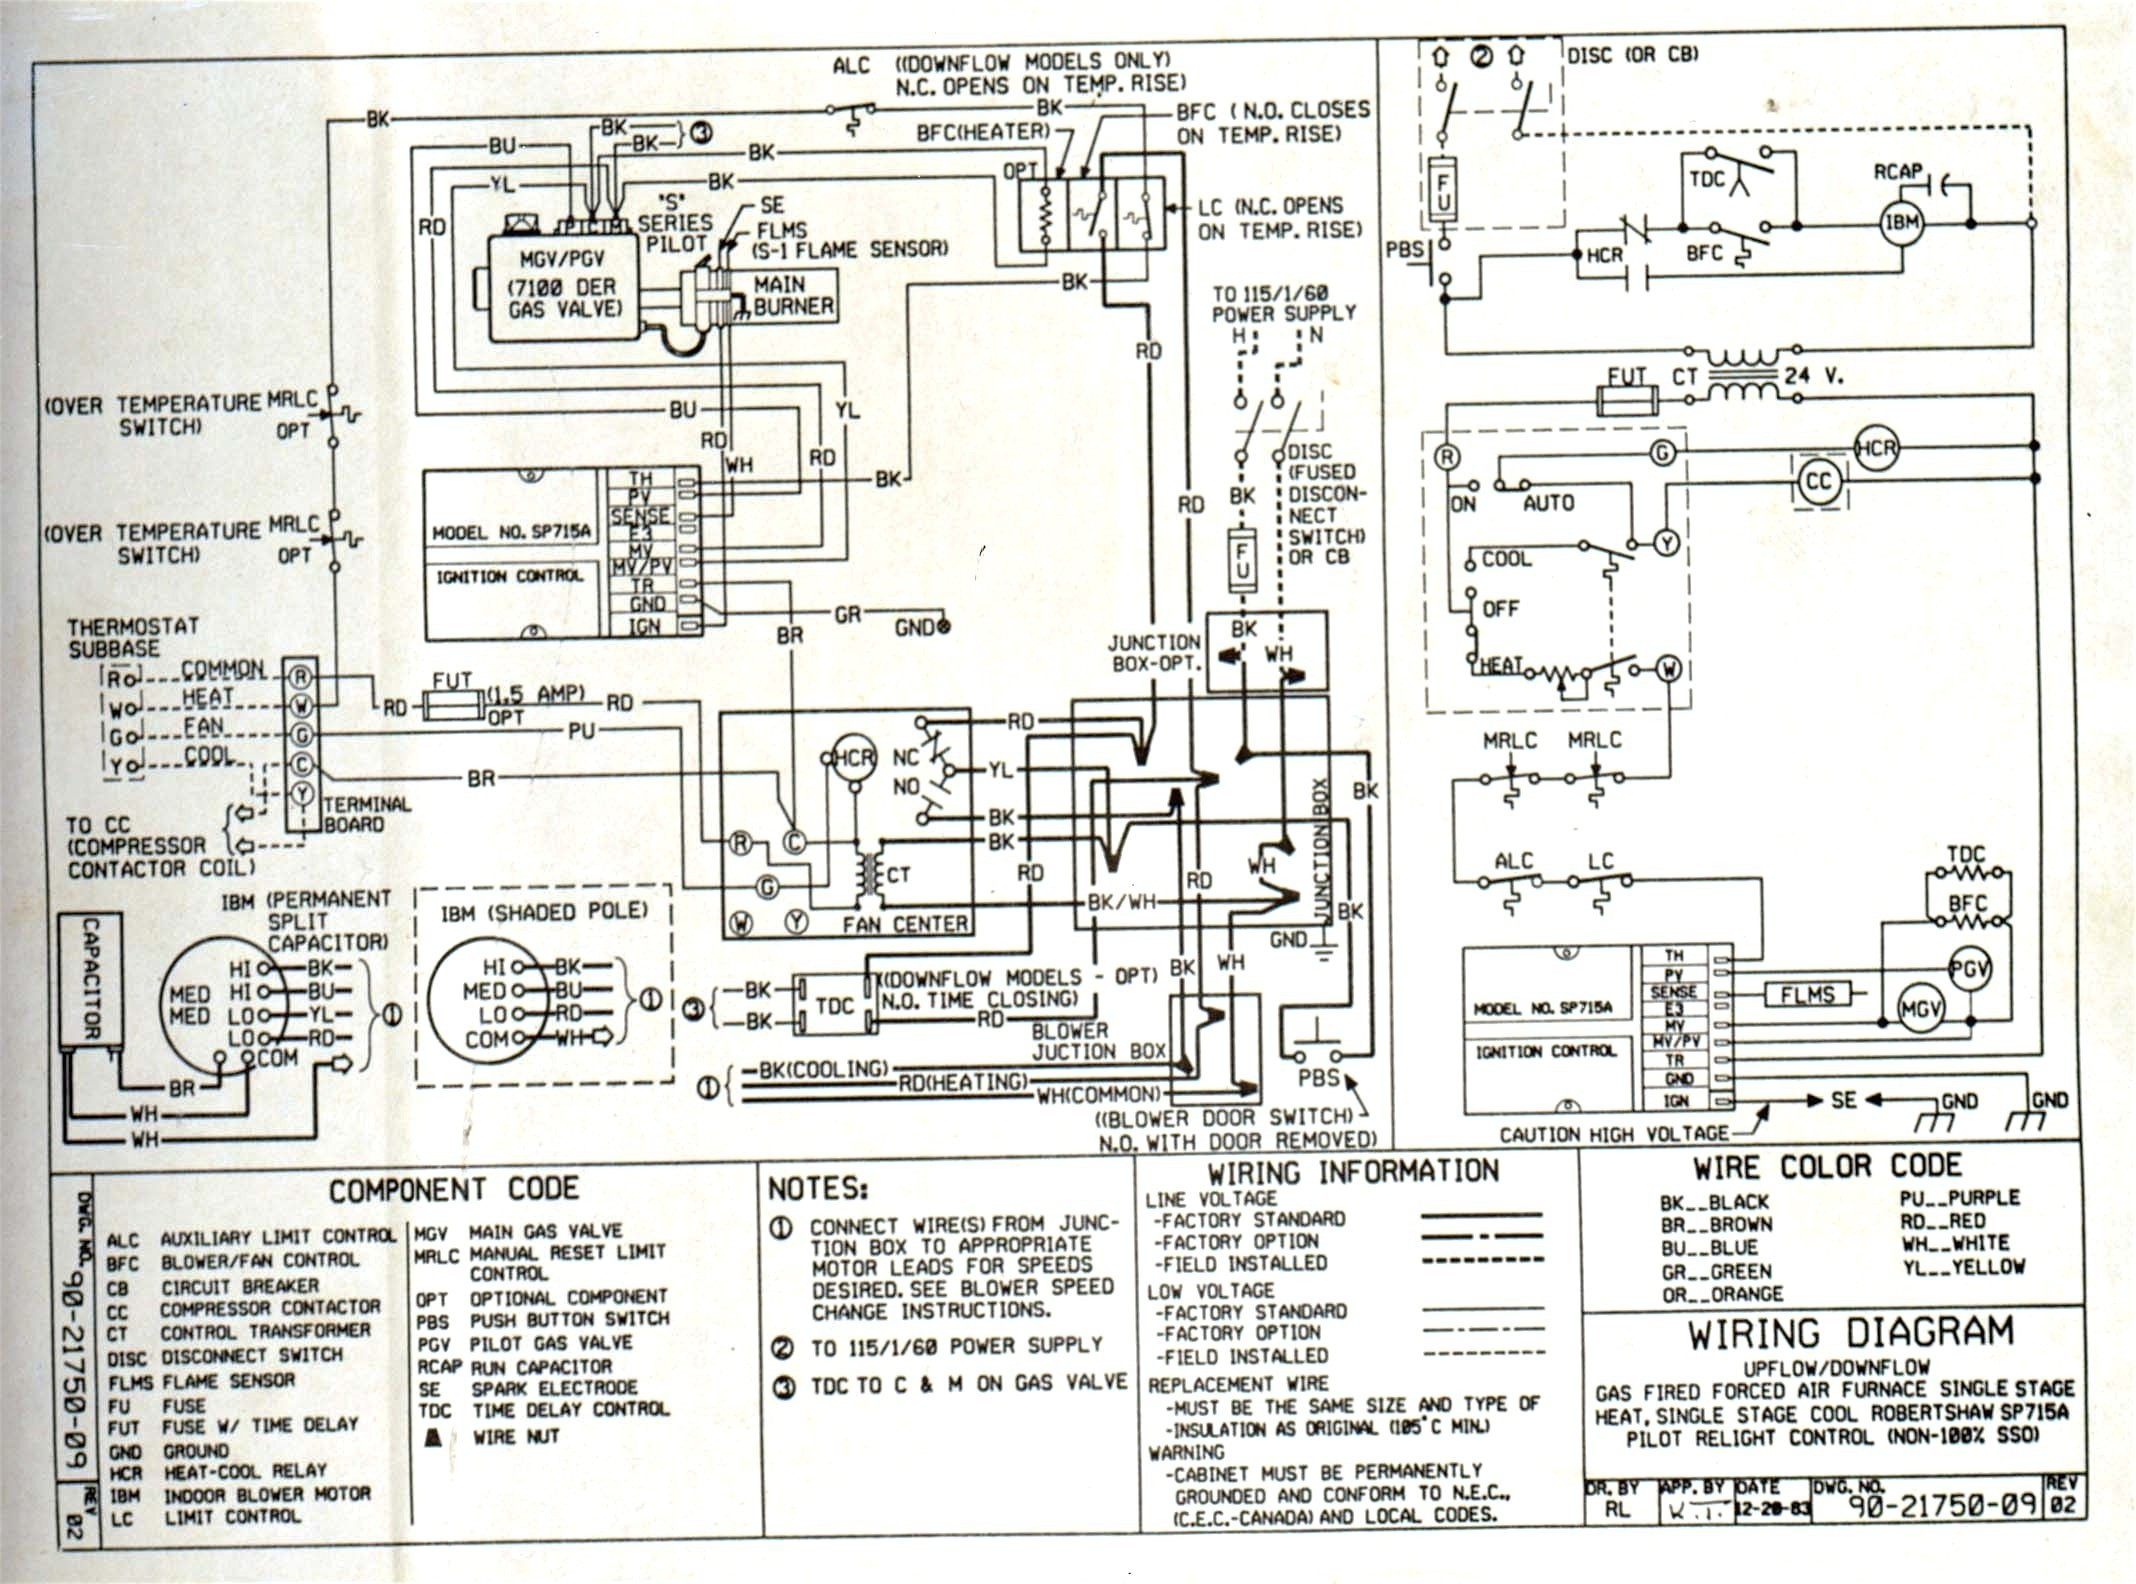 Car Ac Compressor Diagram Inverter Pressor Wiring New Vehicle Automotive Air Con Awesome Of